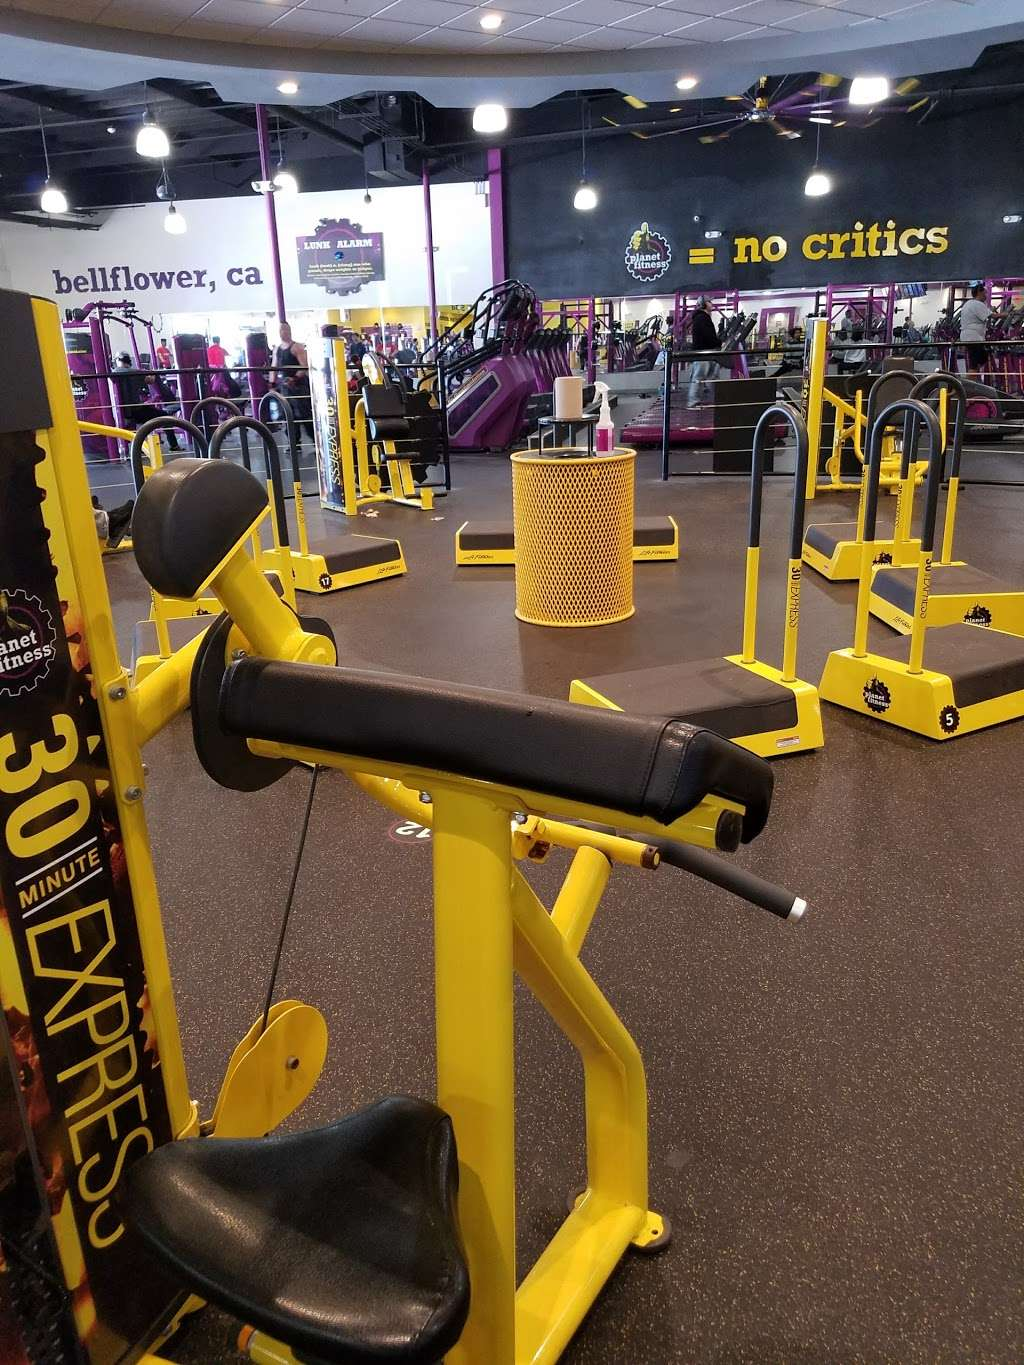 Planet Fitness In Los Angeles : planet, fitness, angeles, Planet, Fitness,, Artesia, Blvd,, Bellflower,, 90706,